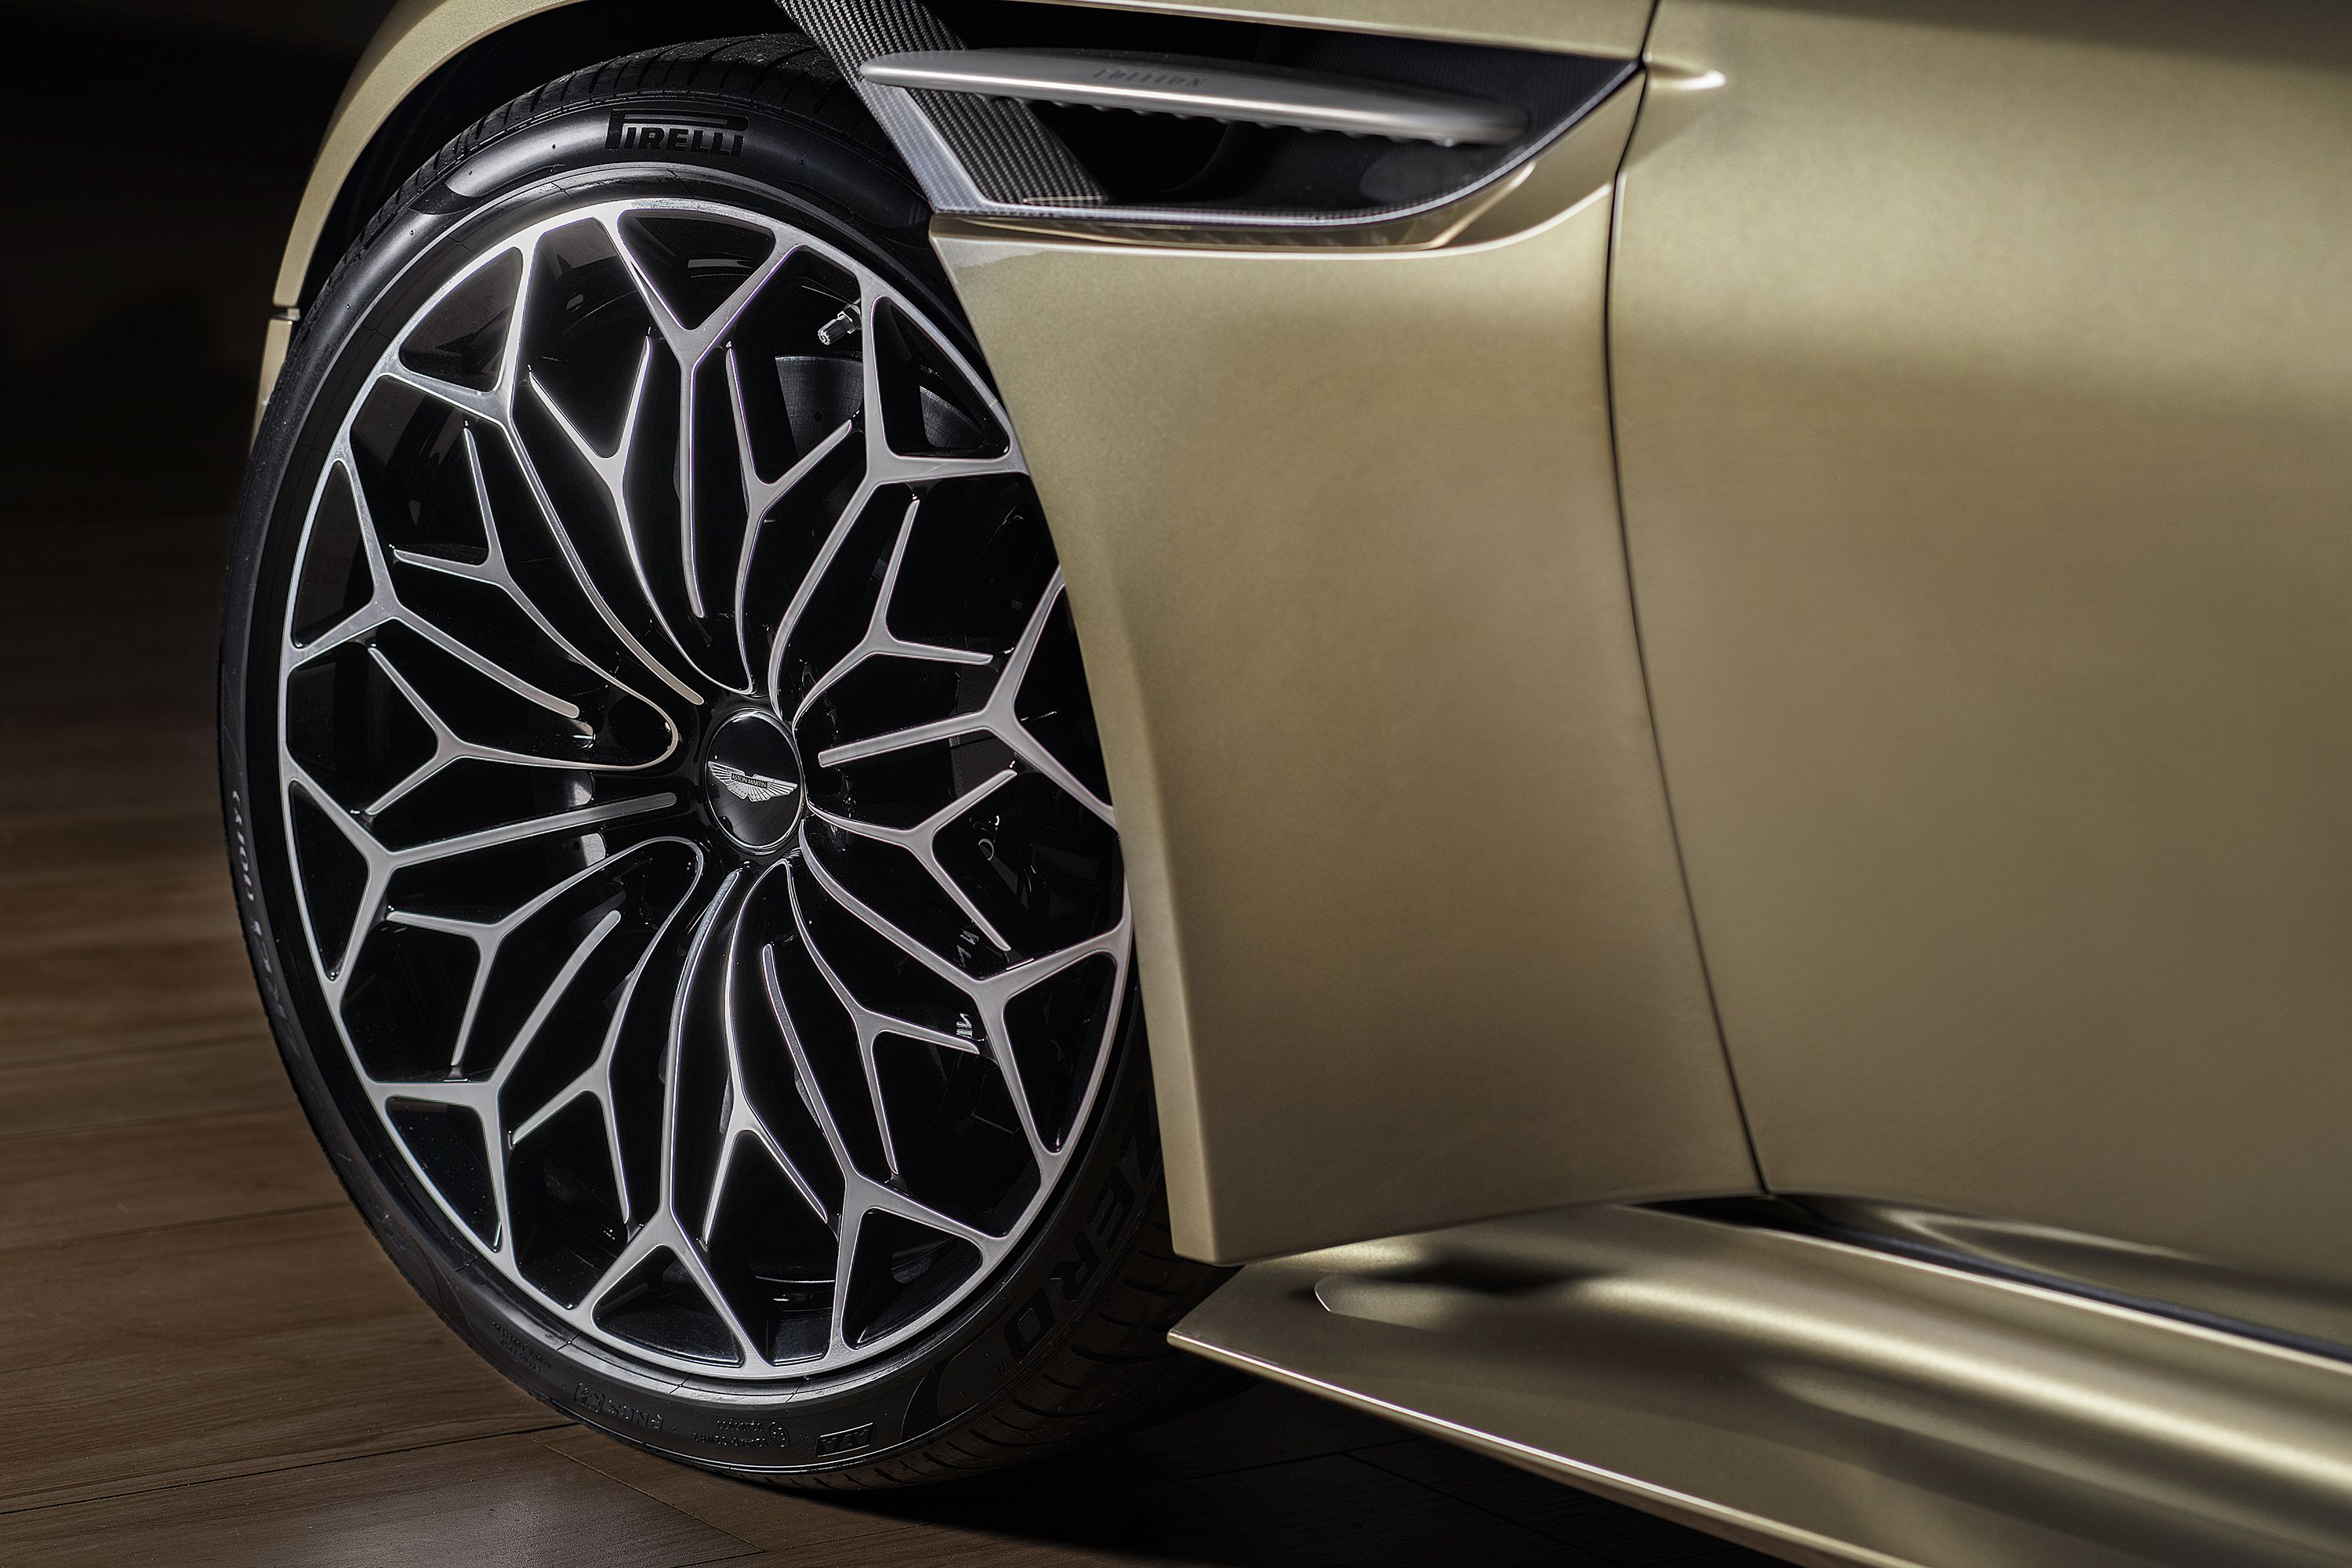 The Wheels Are the Best Part of This James Bond Special-Edition Aston Martin